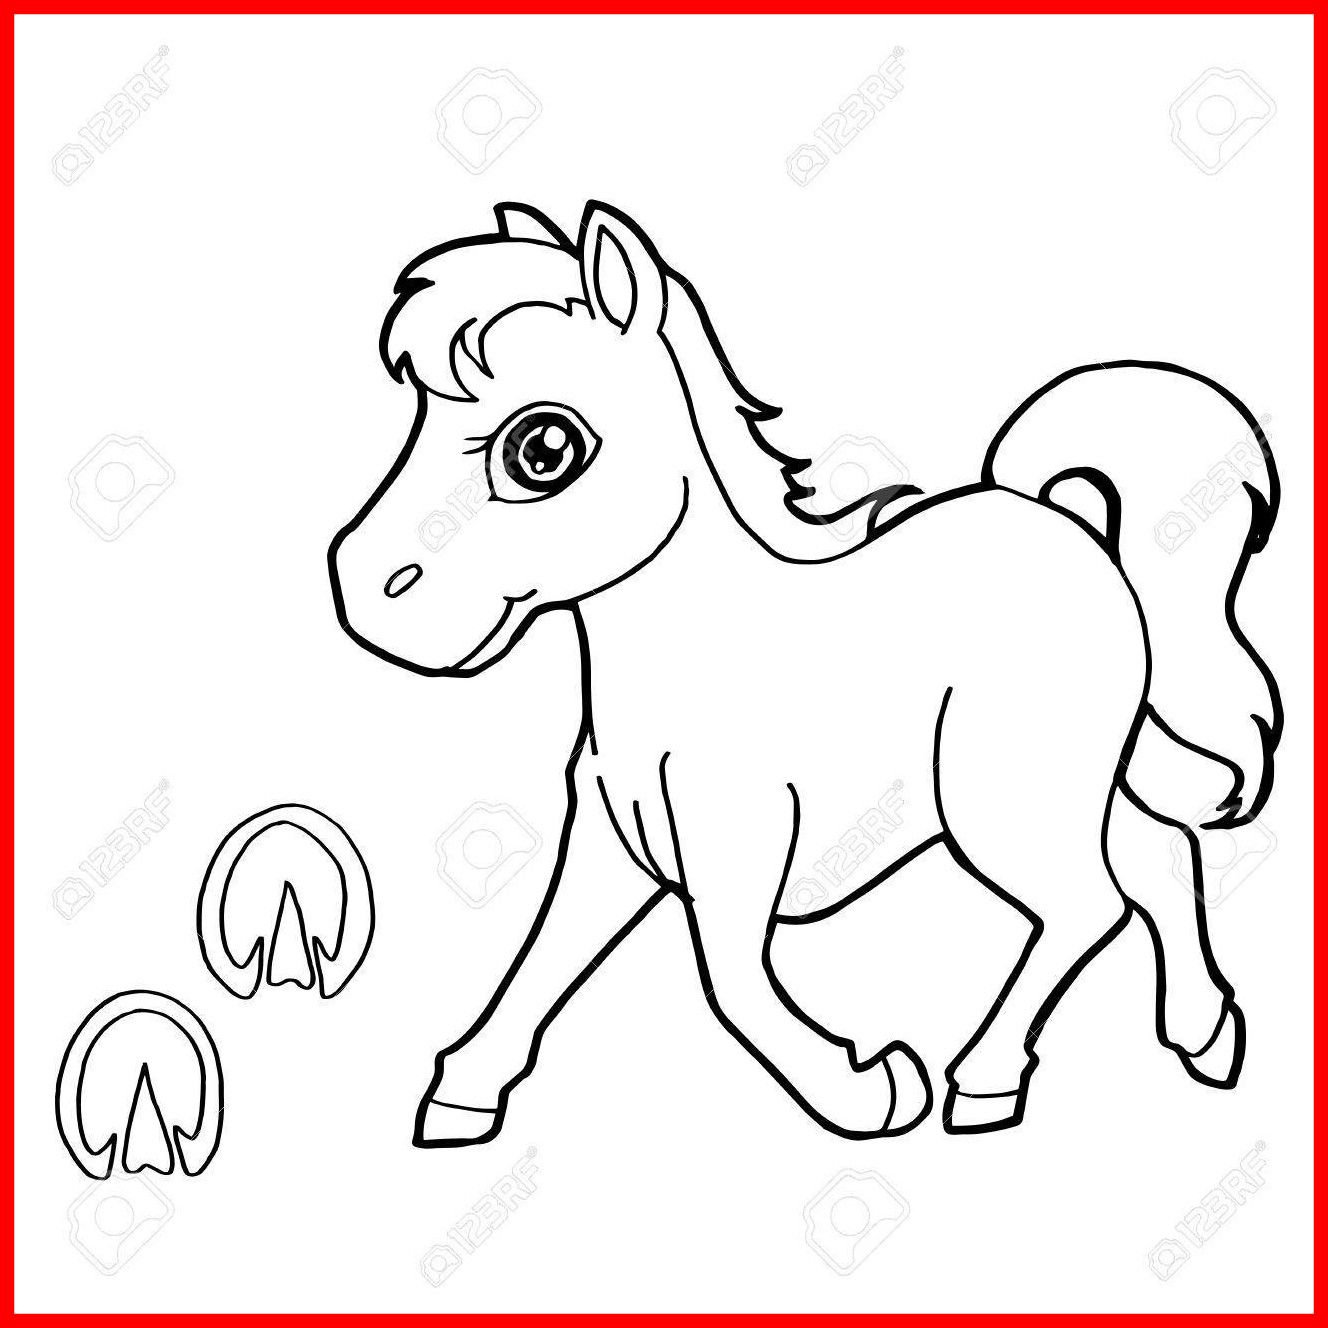 1328x1328 Cartoon Horse Coloring Pages